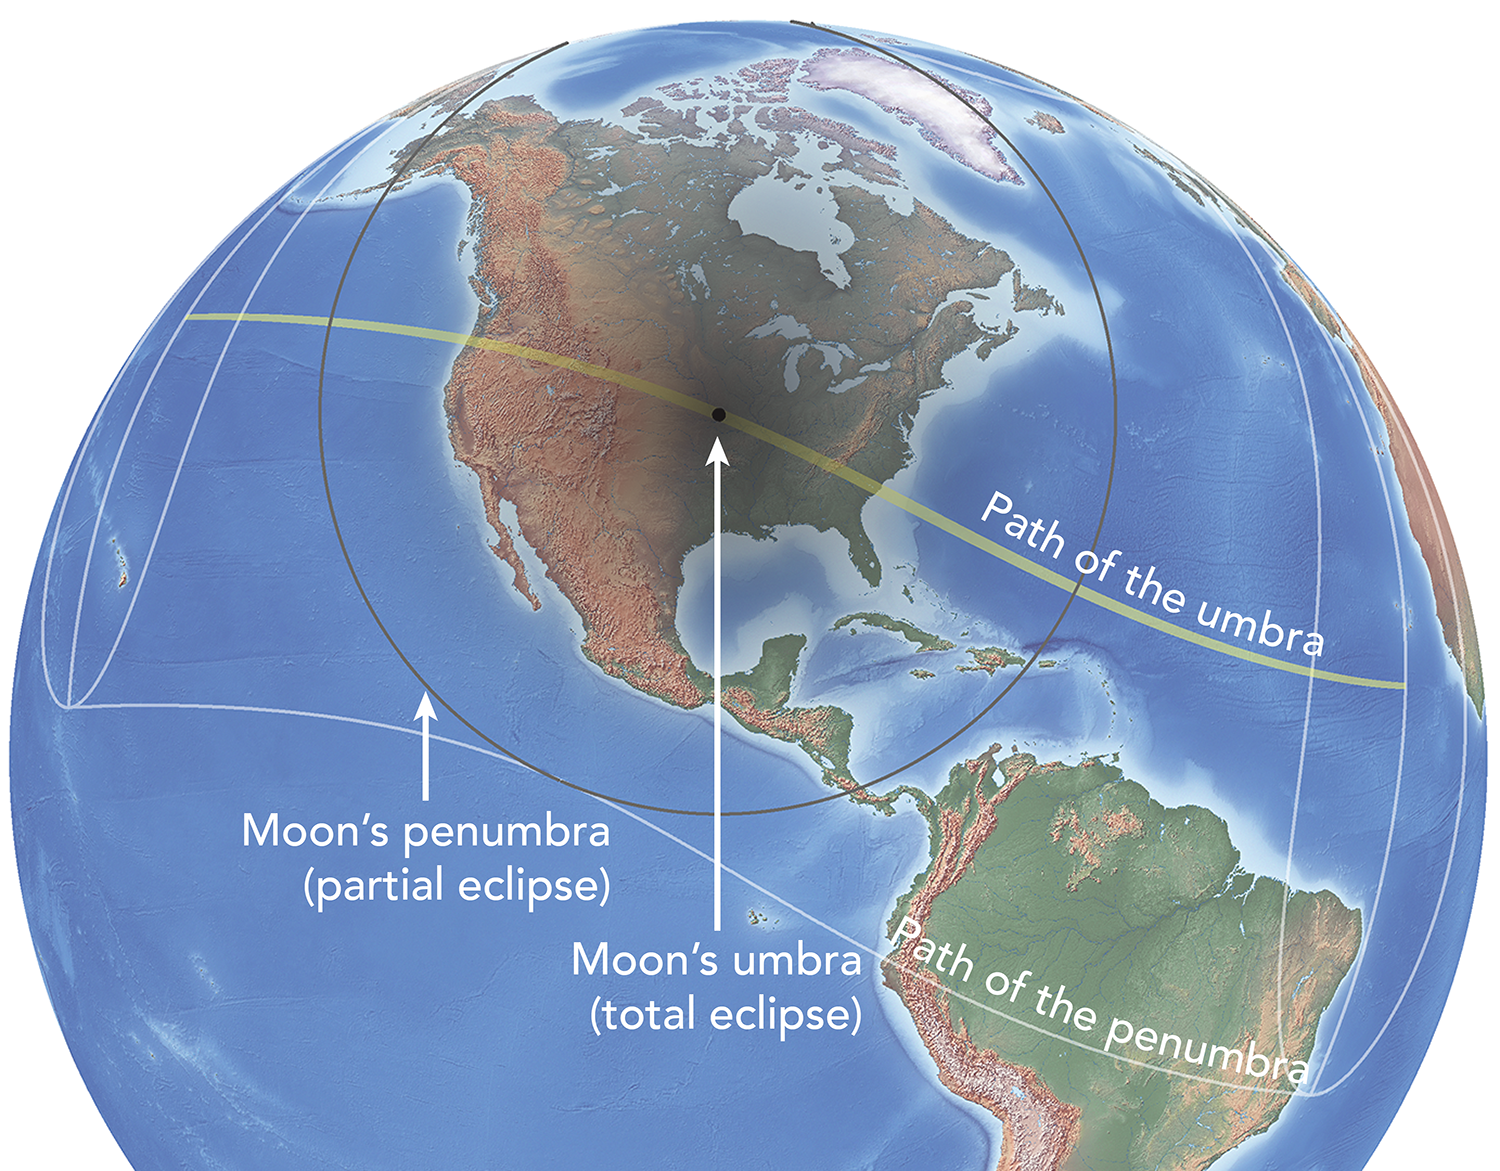 Depiction of the umbra and penumbra at a moment of time during the 2017 total solar eclipse.